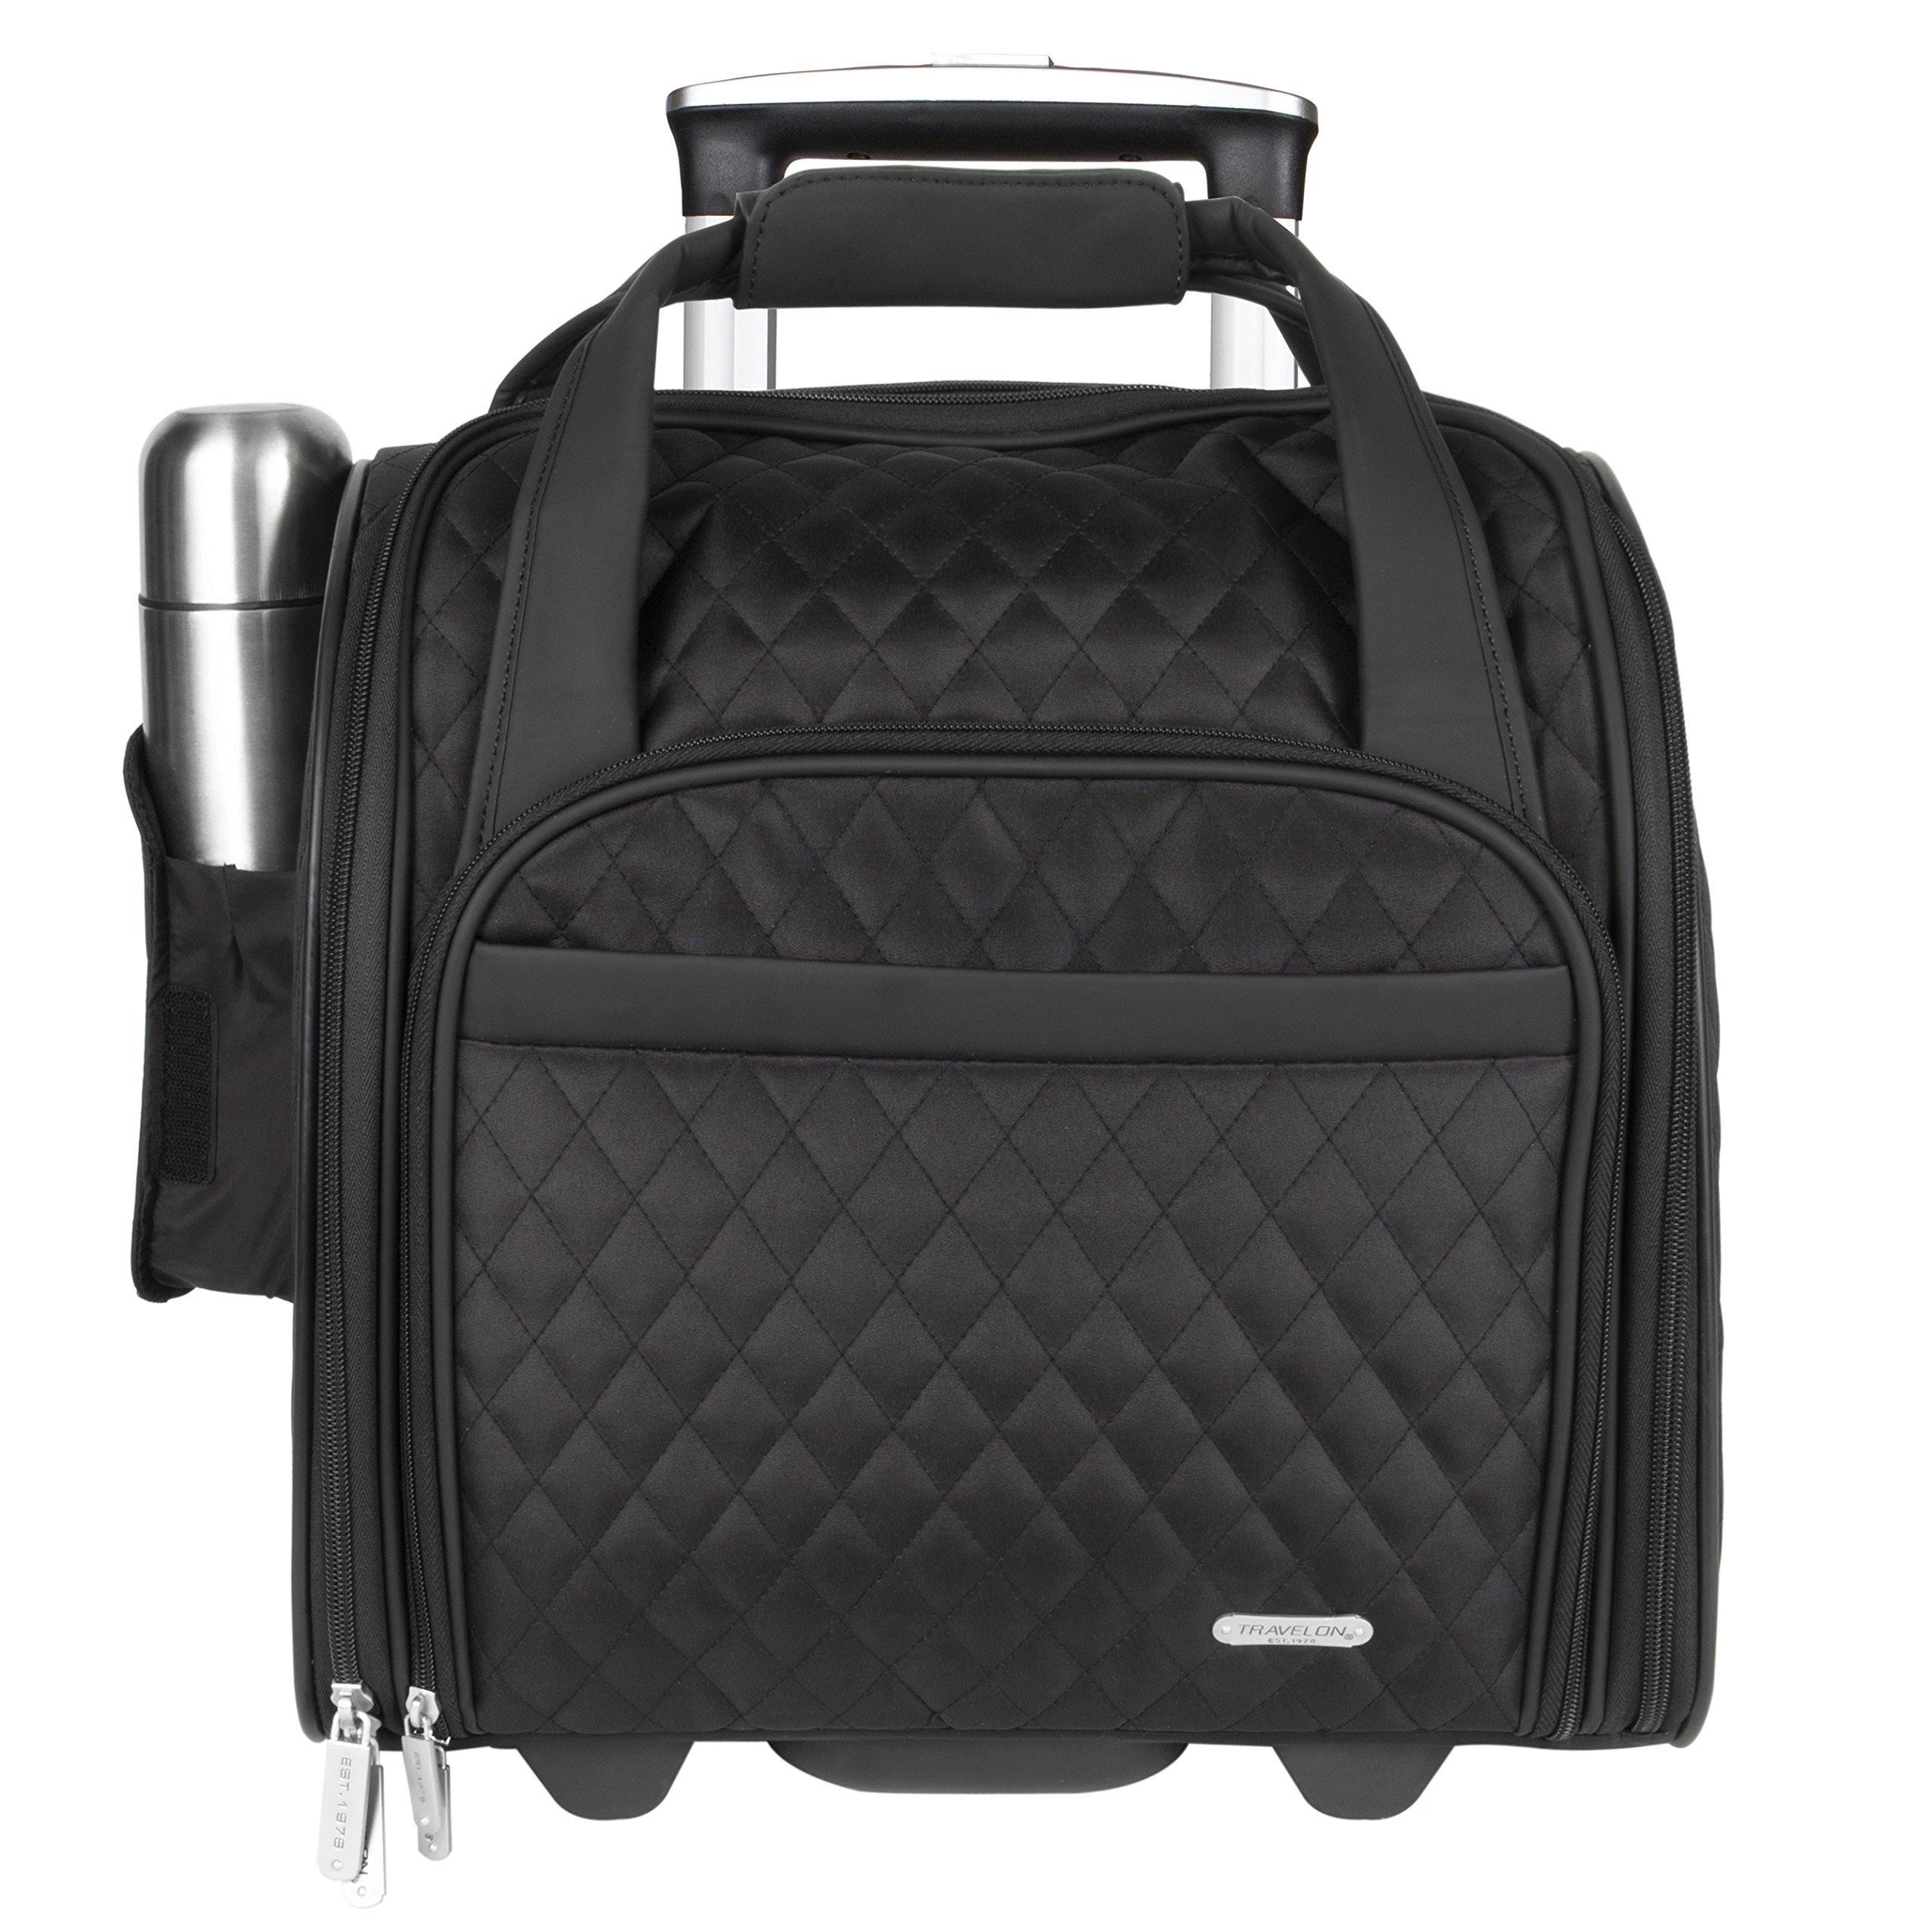 Travelon Wheeled Underseat Carry-On with Back-Up Bag, Black, One Size